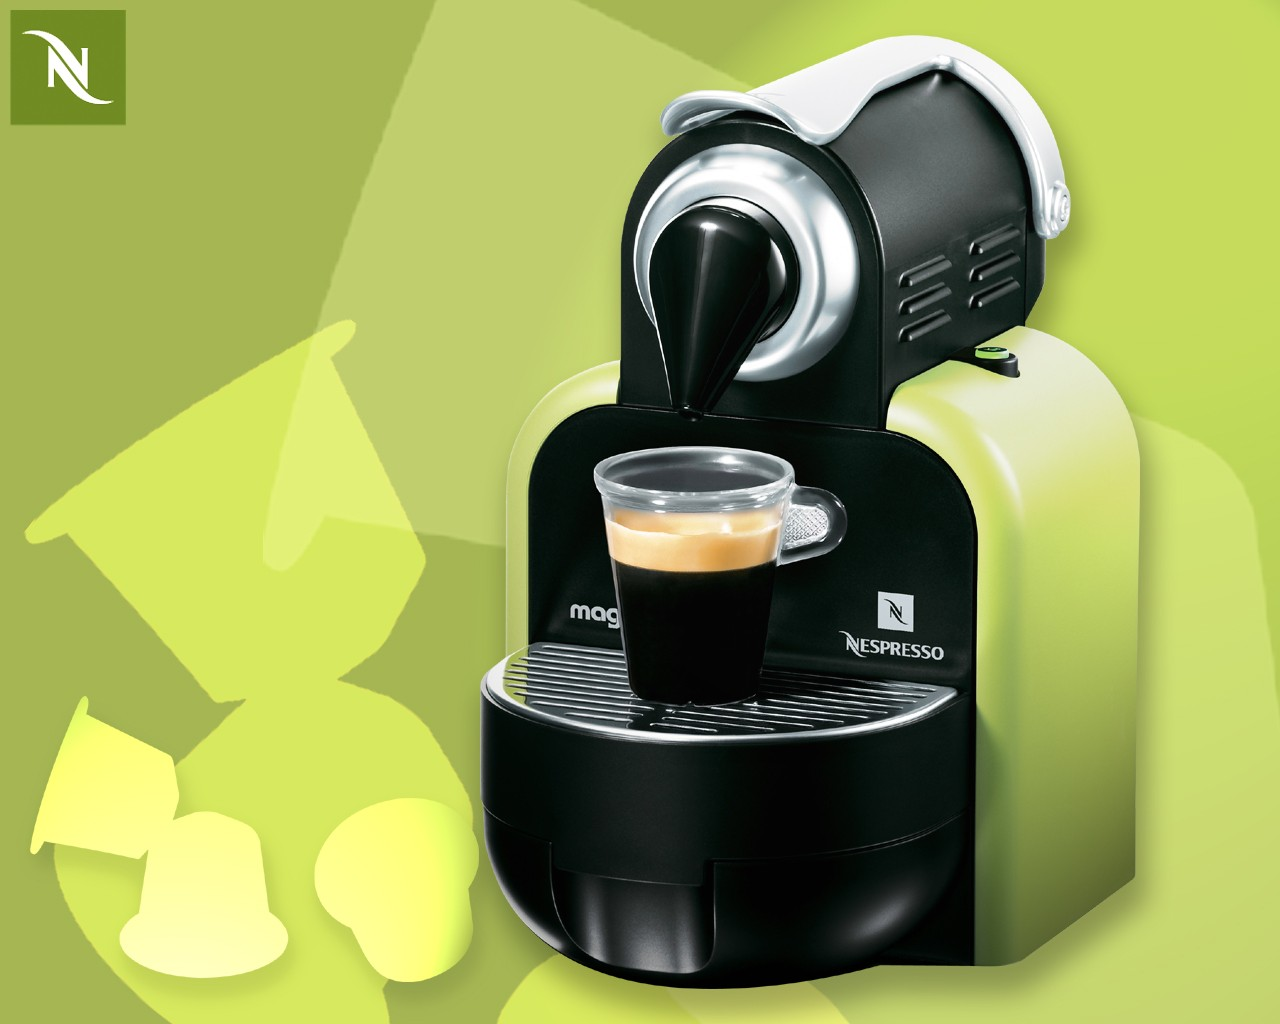 Nespresso will recycle the coffee capsules